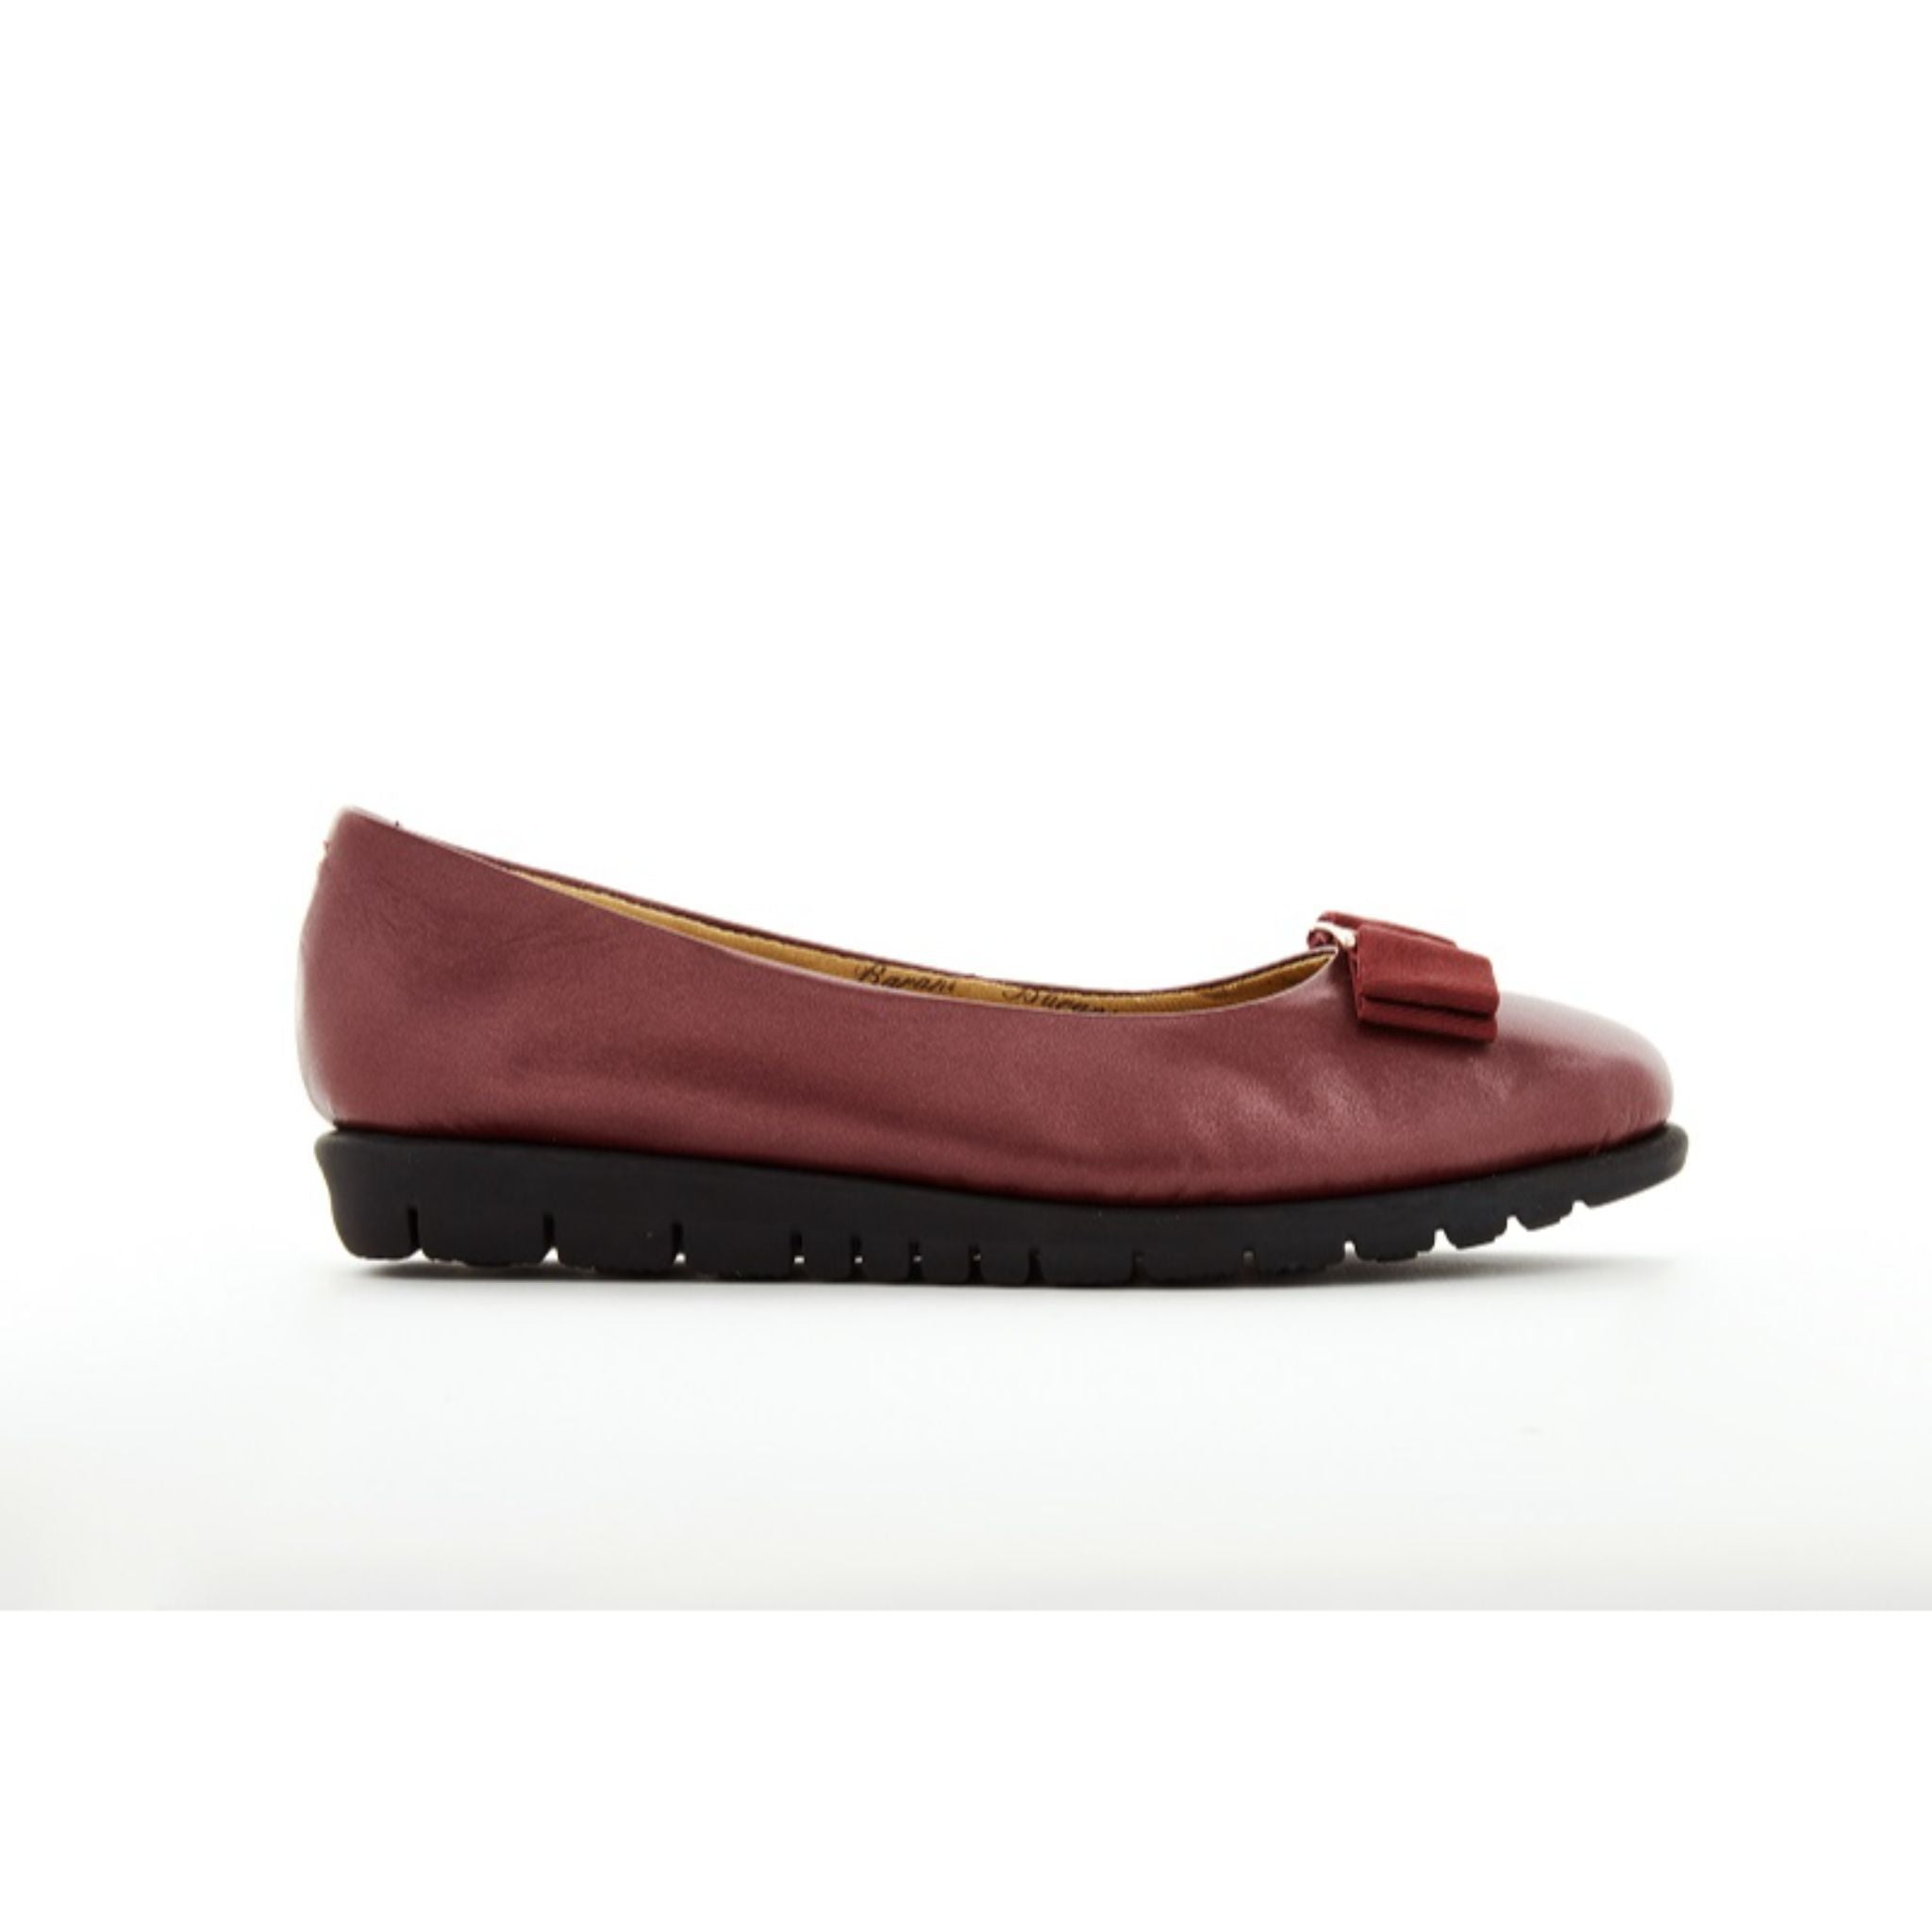 Barani Leather Pumps Ballet Flats with Fixed Buckle 8841-33 Maroon